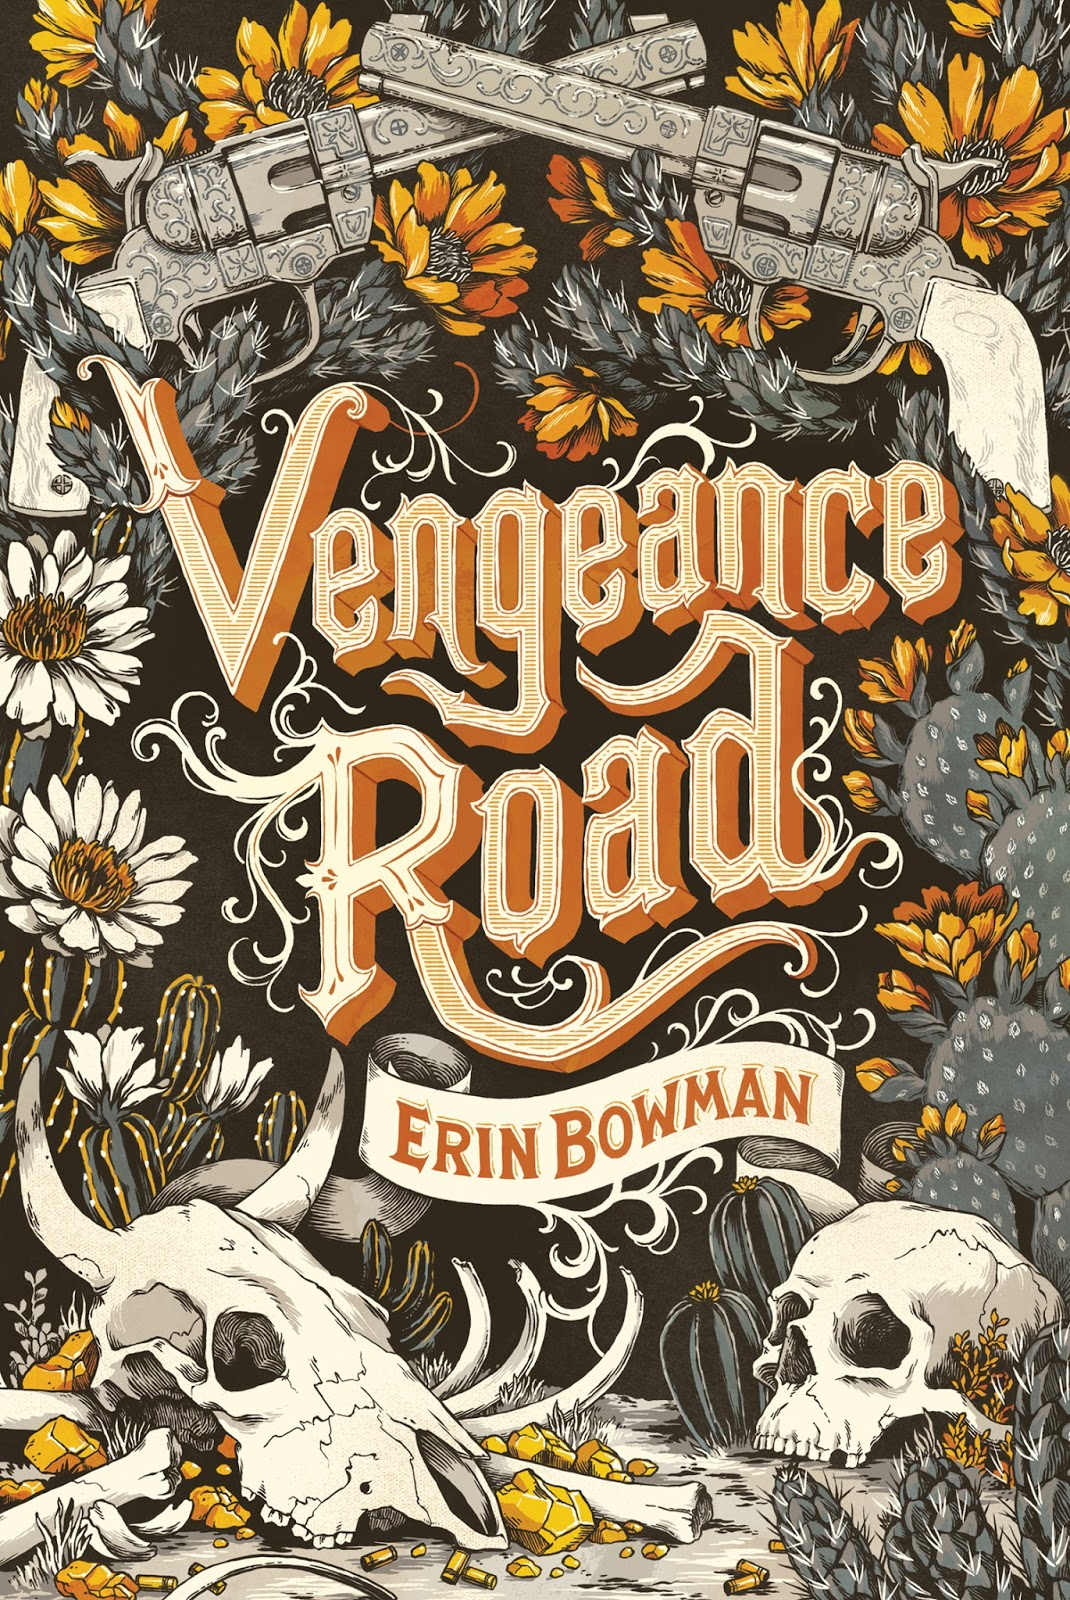 Vengeance Road by Erin Bowman -  The 29 Best YA Book Covers of 2015 as Chosen by Epic Reads Designers